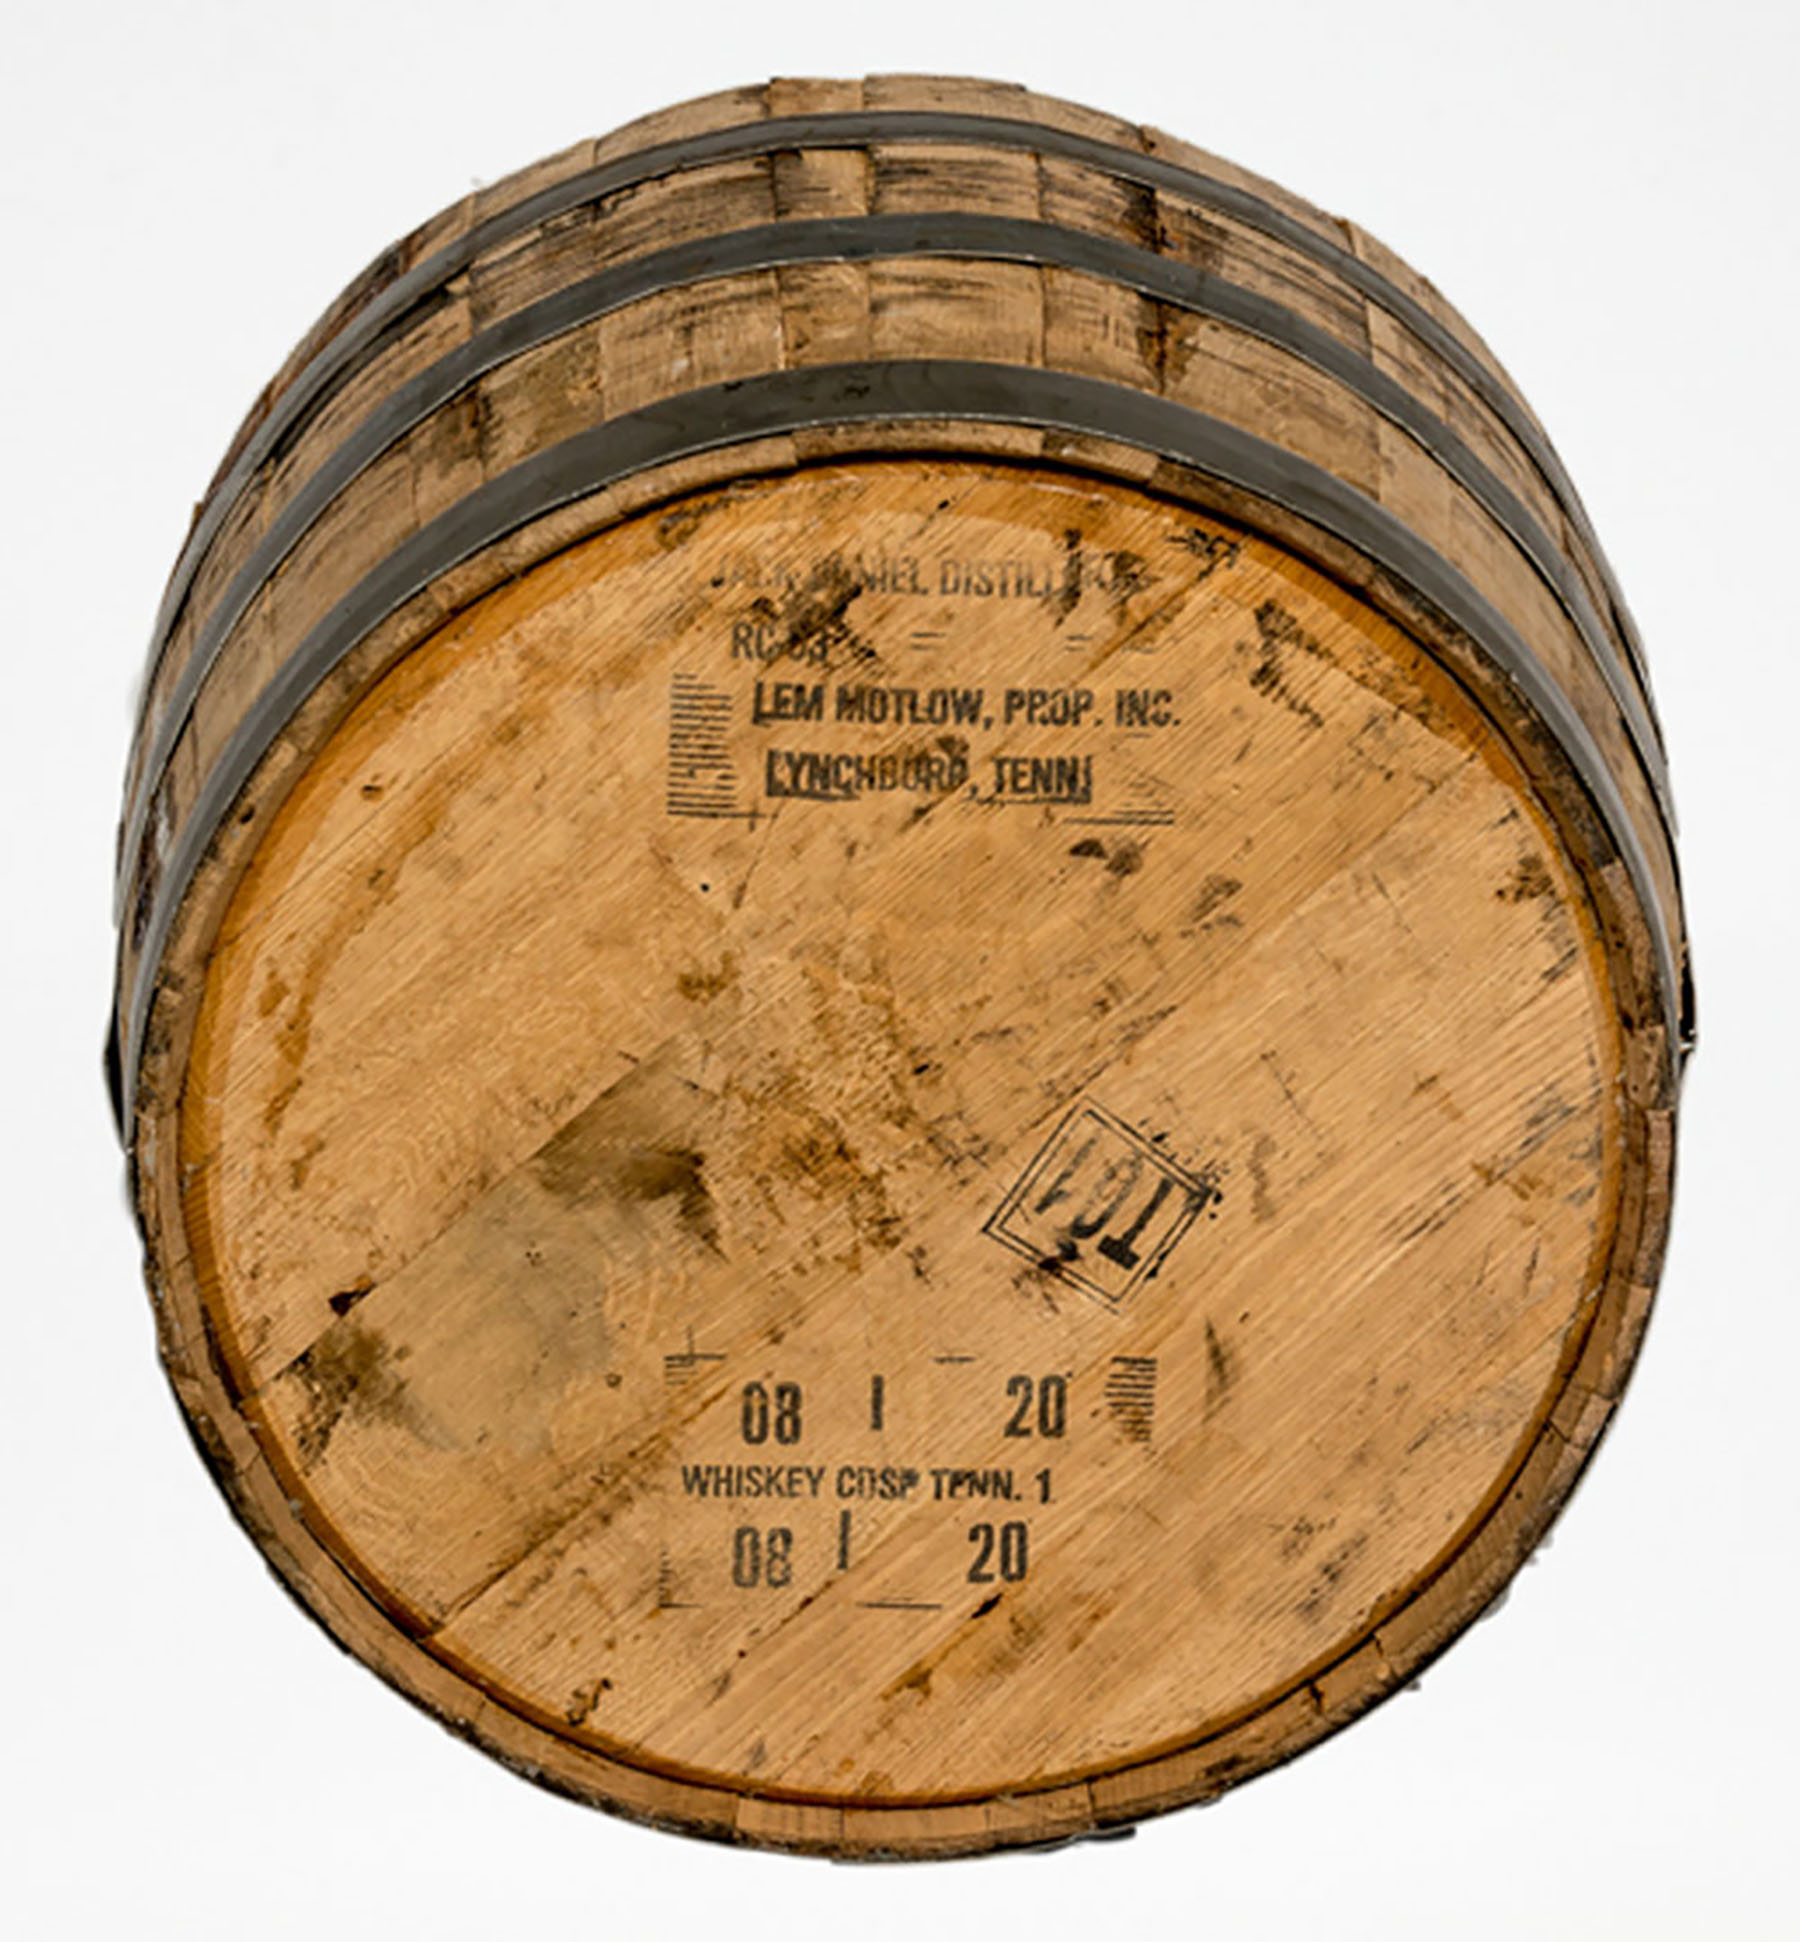 Real Wood - Lawn and Garden - Oak Barrels - Half Oak B100 - White Background (Bottom View).jpg